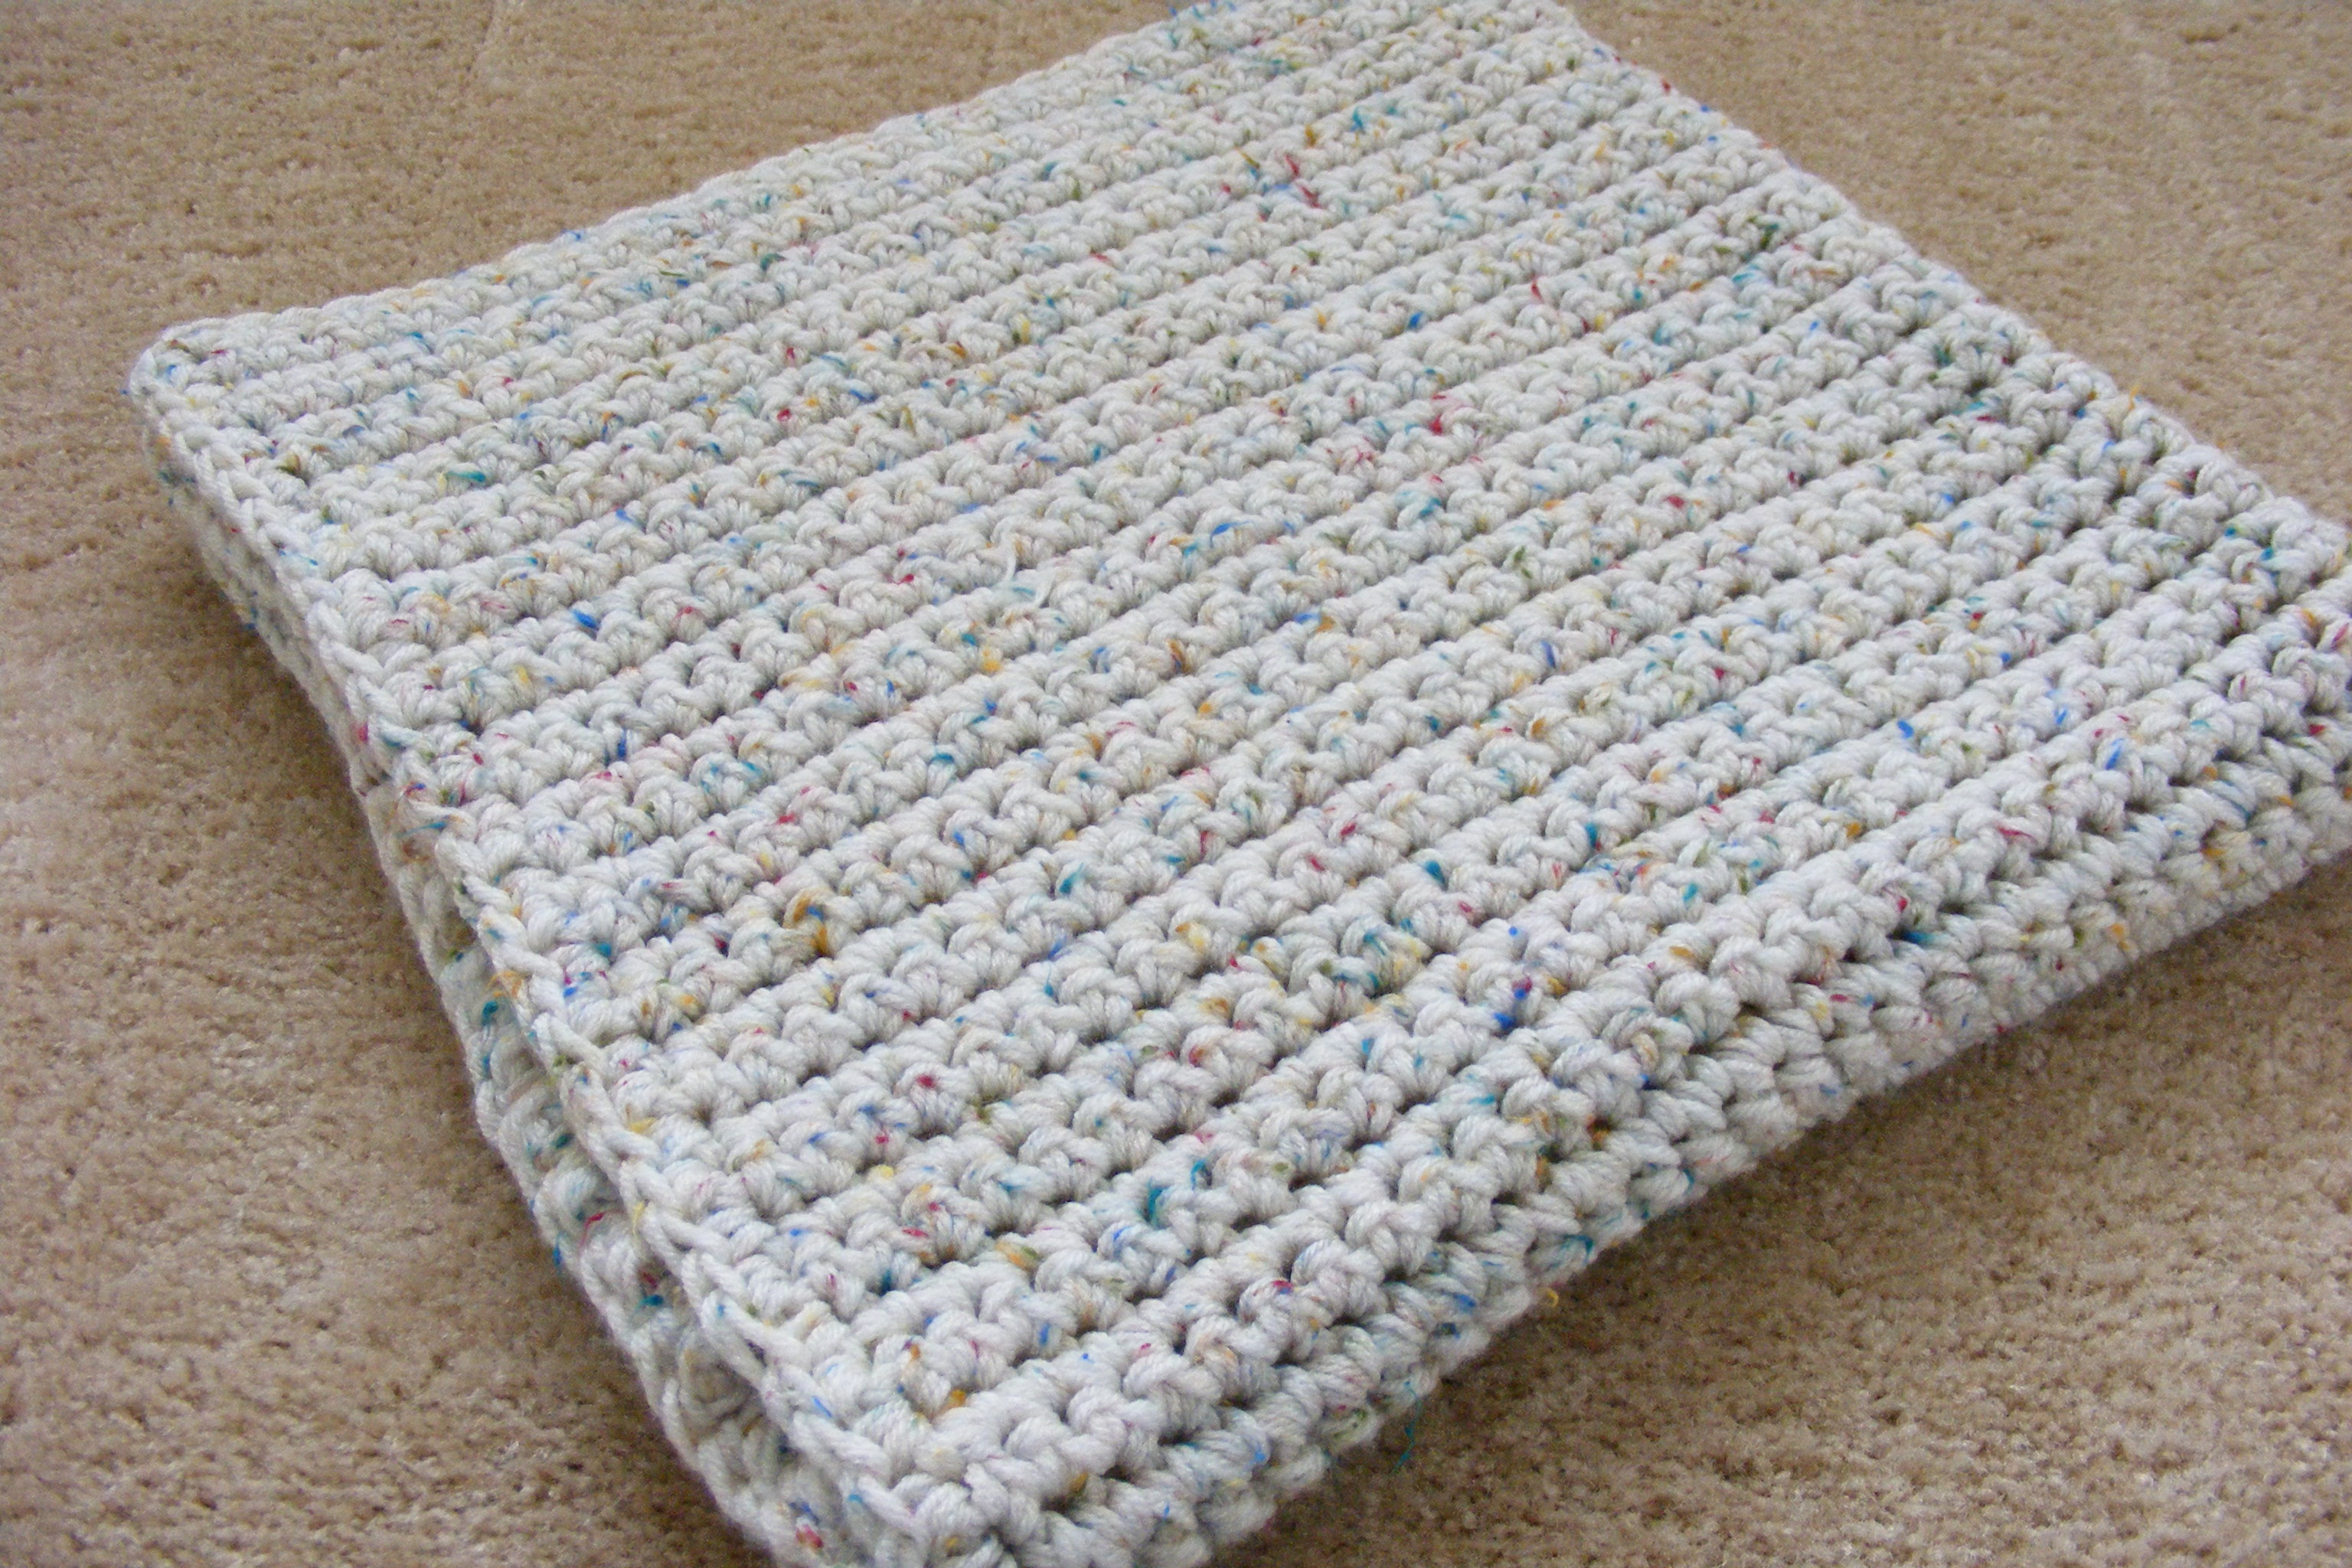 Crochet Patterns Easy Blankets : BABY BLANKET CROCHET EASY PATTERN FREE PATTERNS